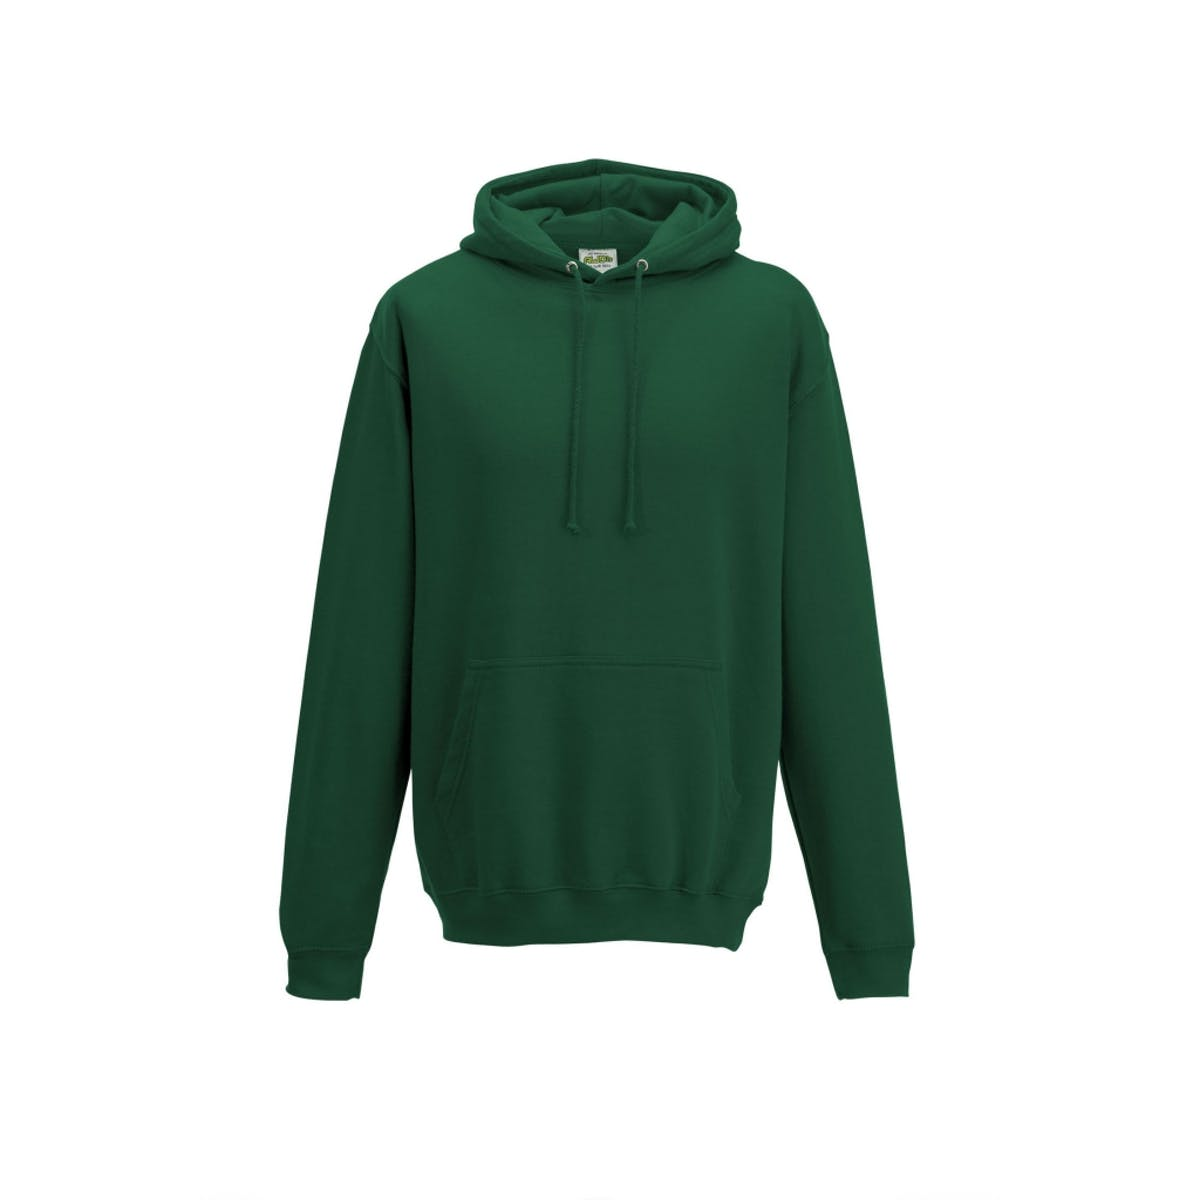 bottle green smoke overhead college hoodies